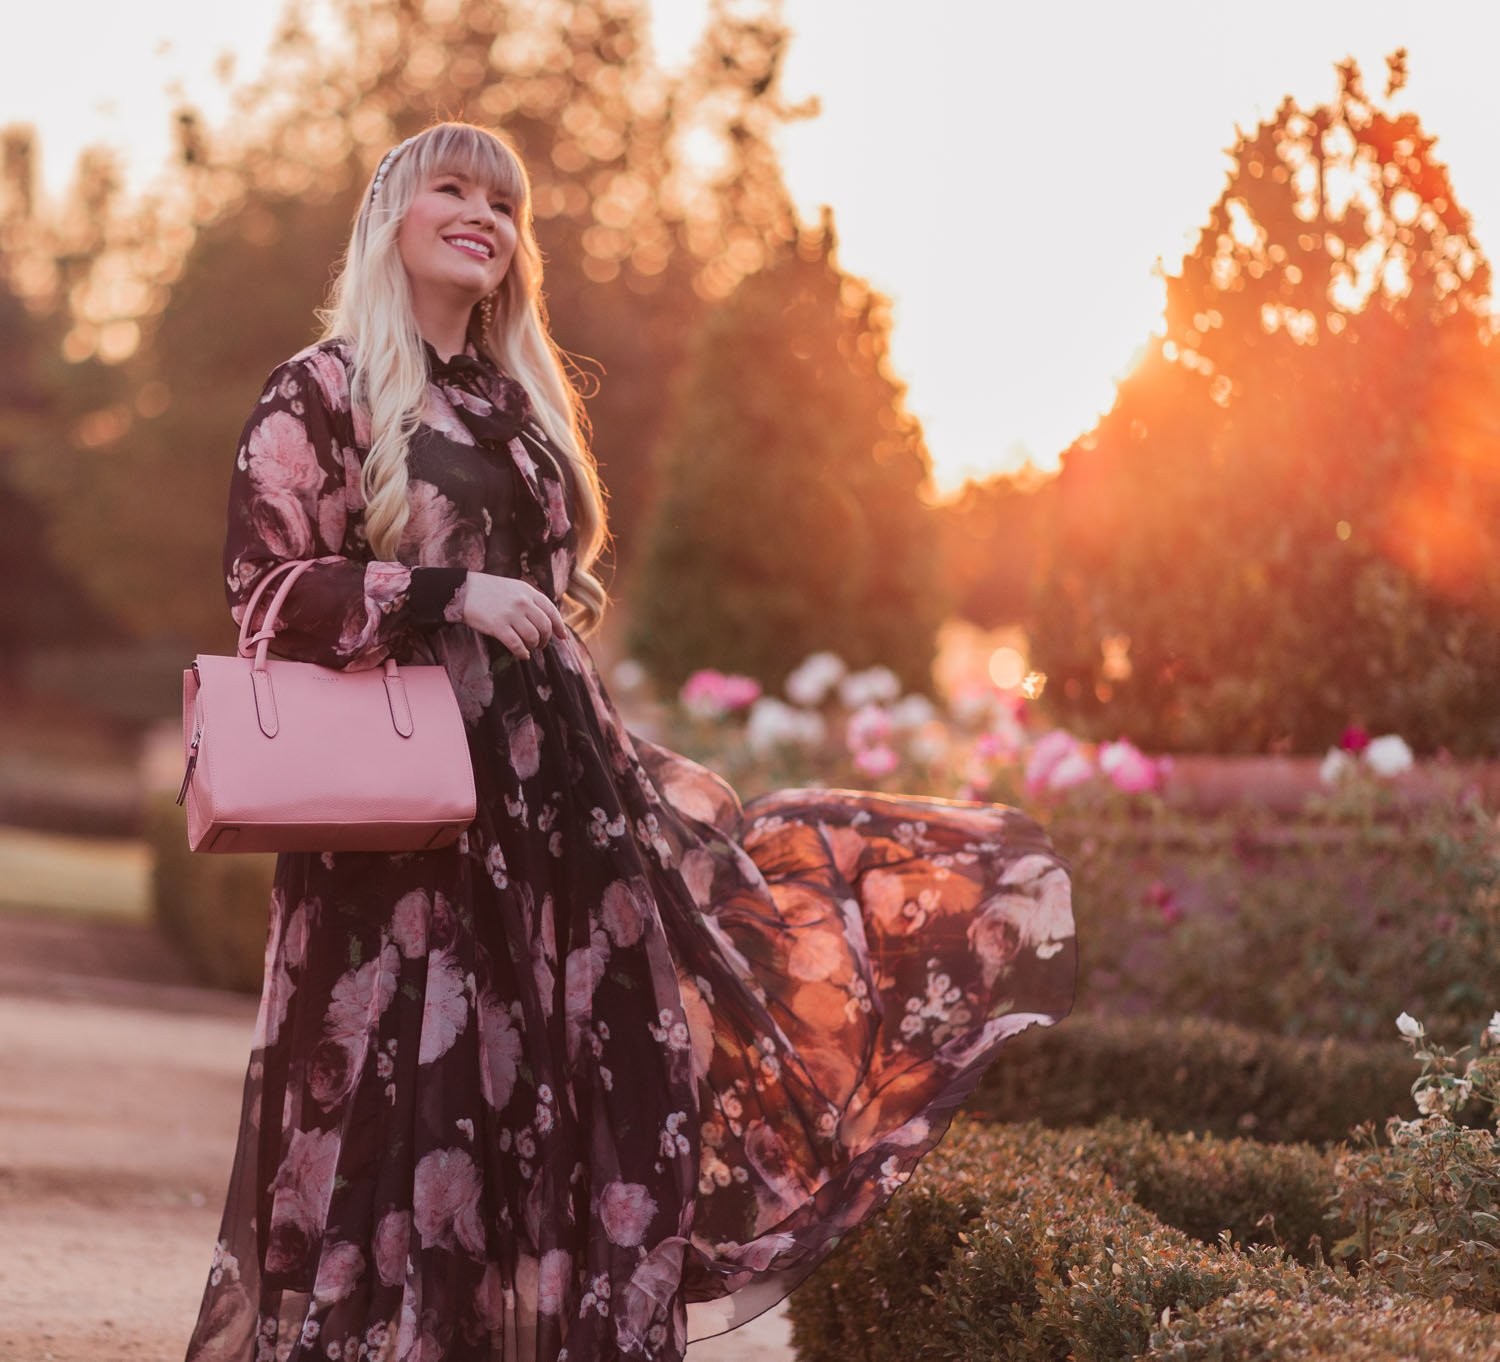 Fashion Blogger Elizabeth Hugen of Lizzie in Lace shares an aesthetic outfit idea with a black floral set for fall